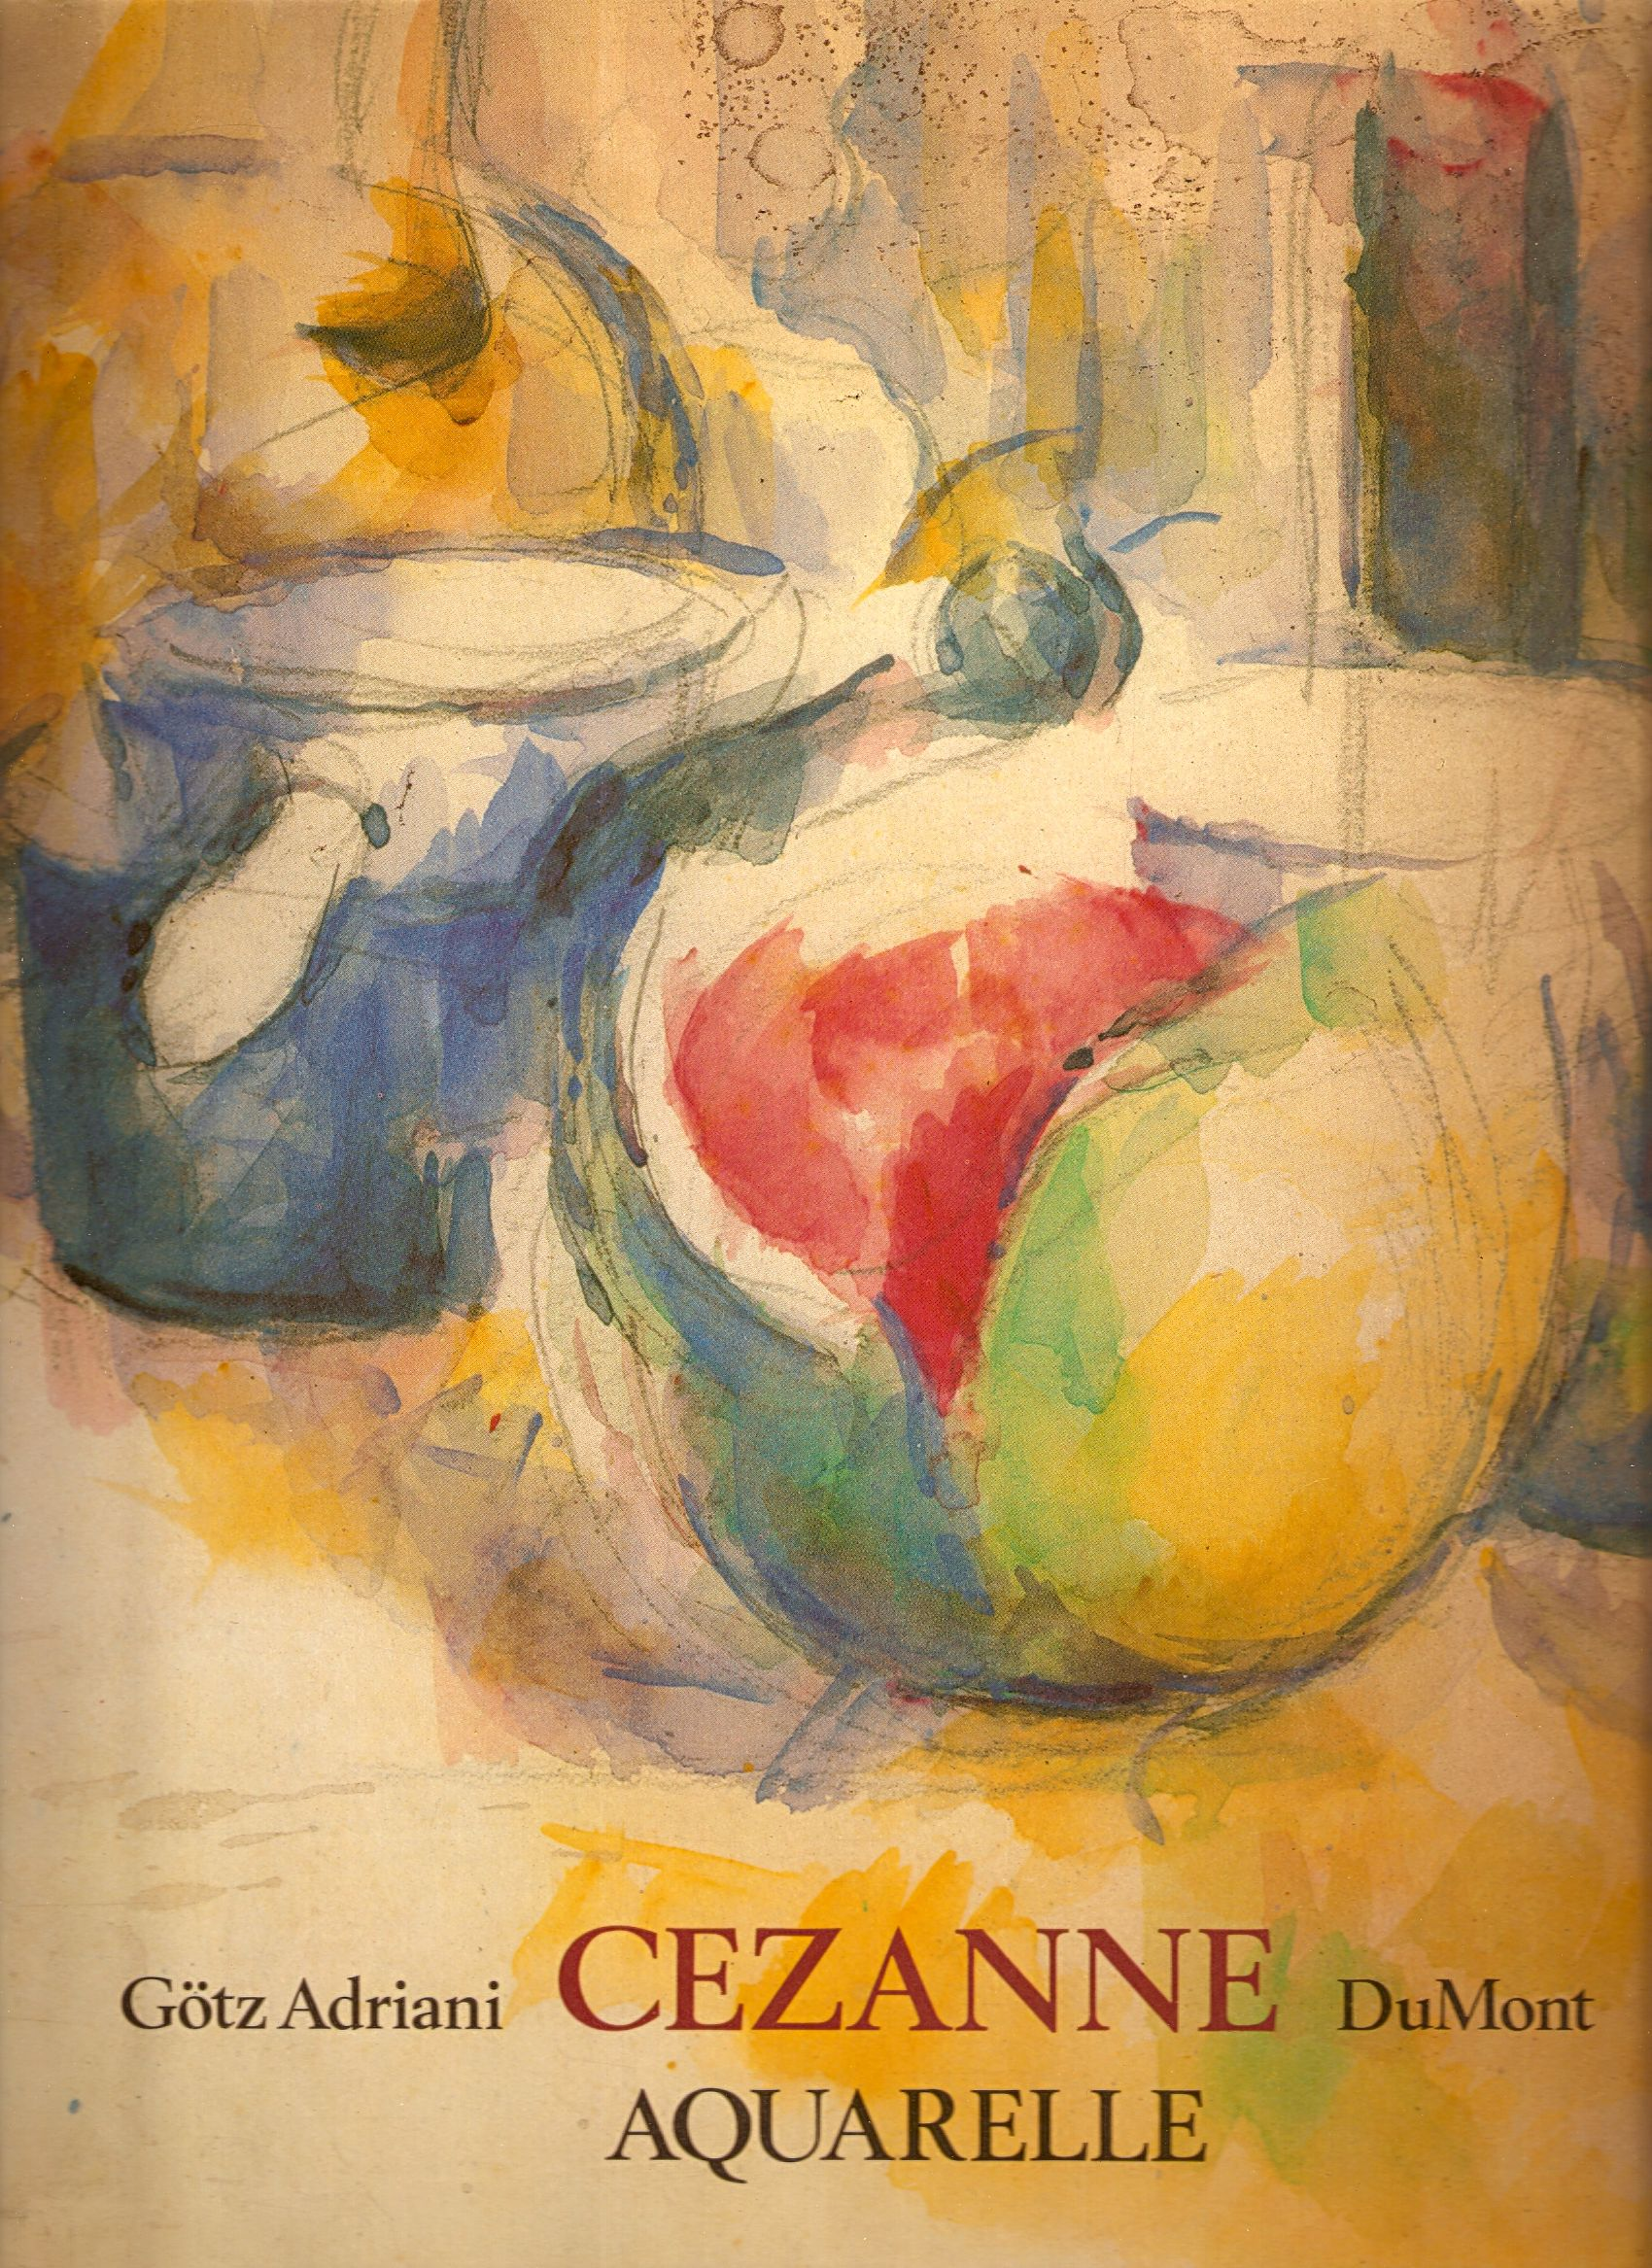 Paul Cézanne, Aquarelle